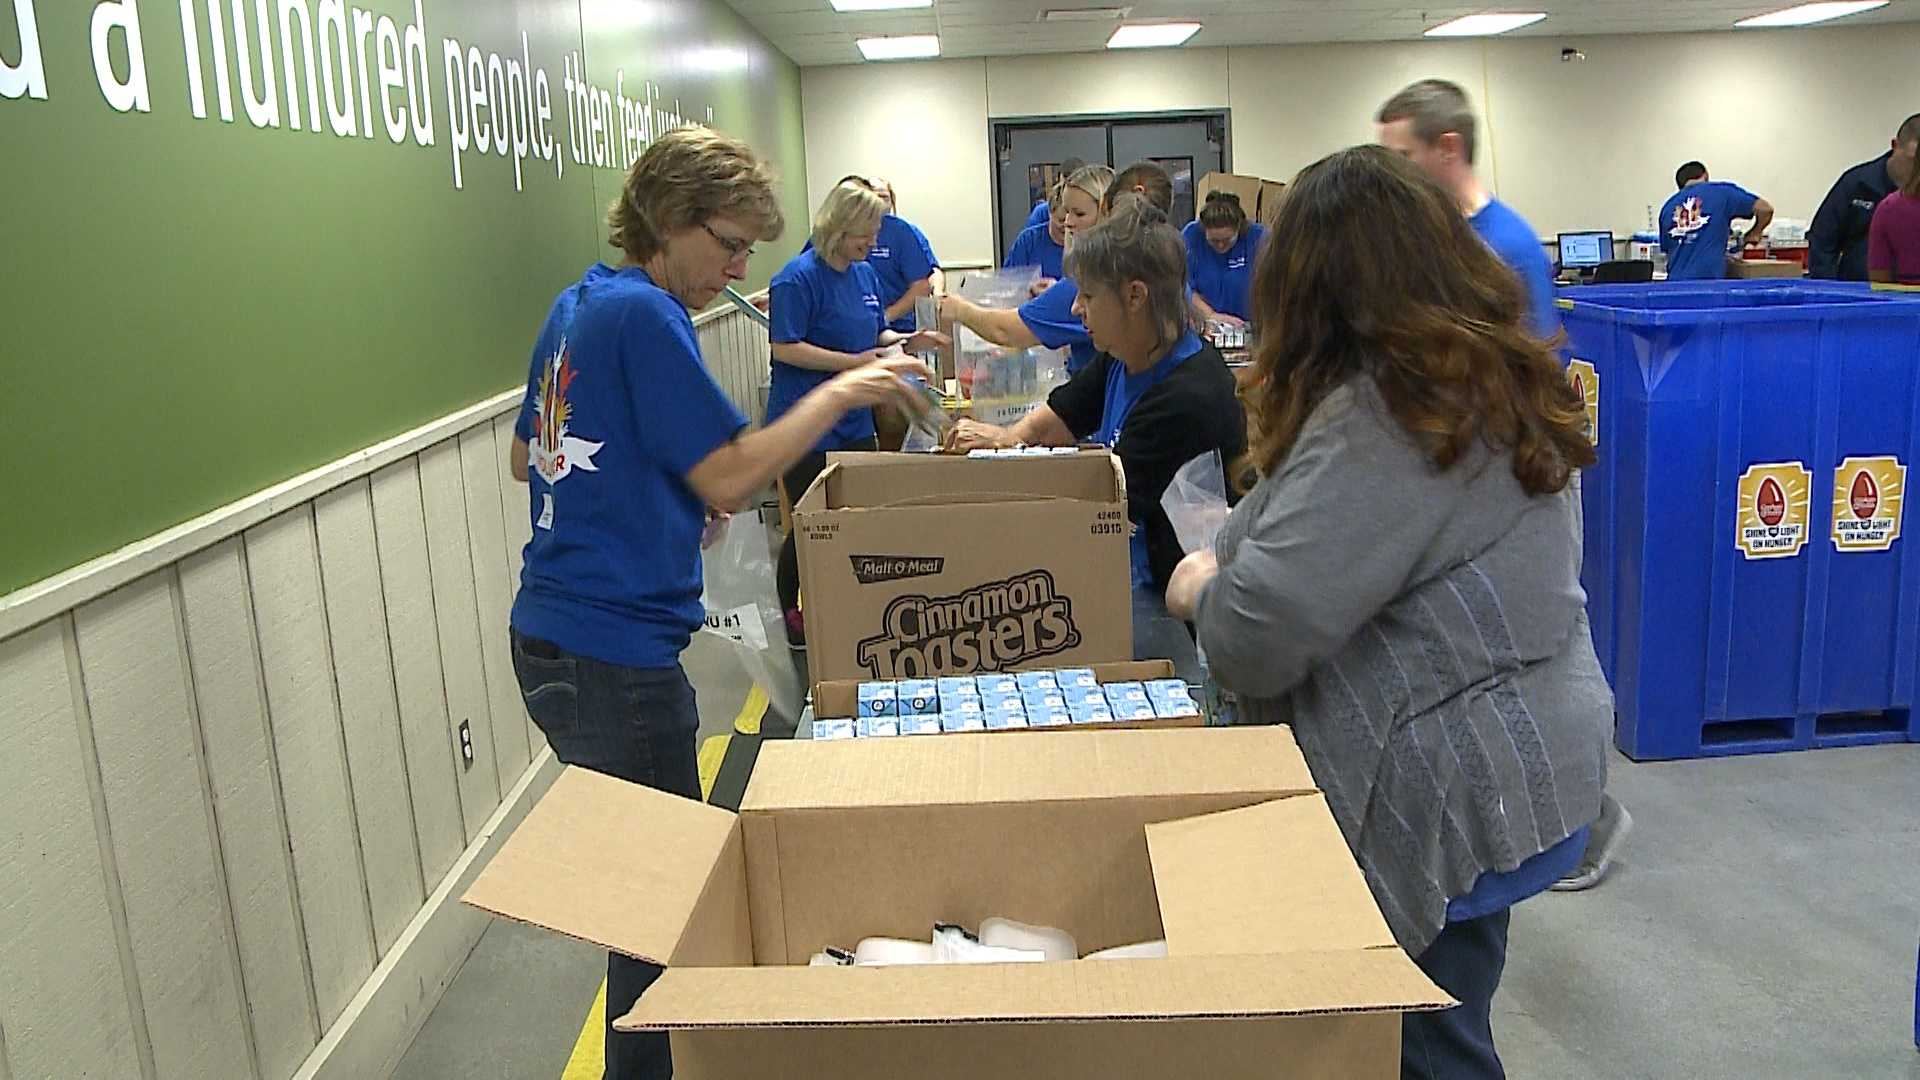 More than 800 volunteers showed their support for Day of Caring 2016 at the United Way of the Midlands.